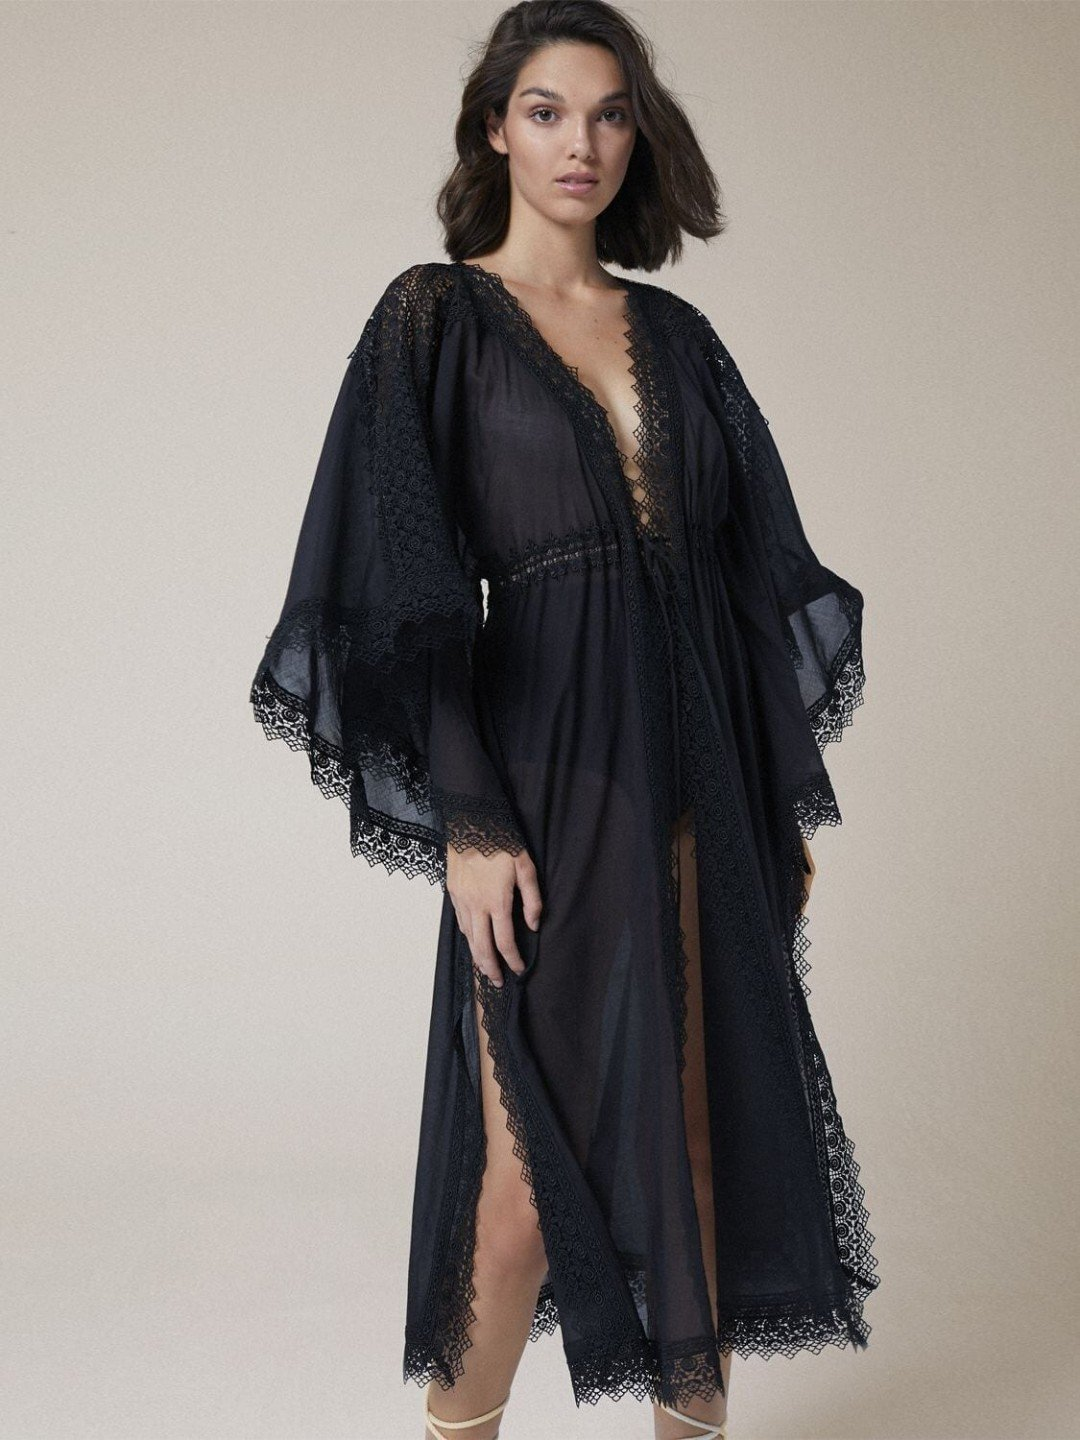 20 Best Kaftans Dresses To Use As Cover-Ups